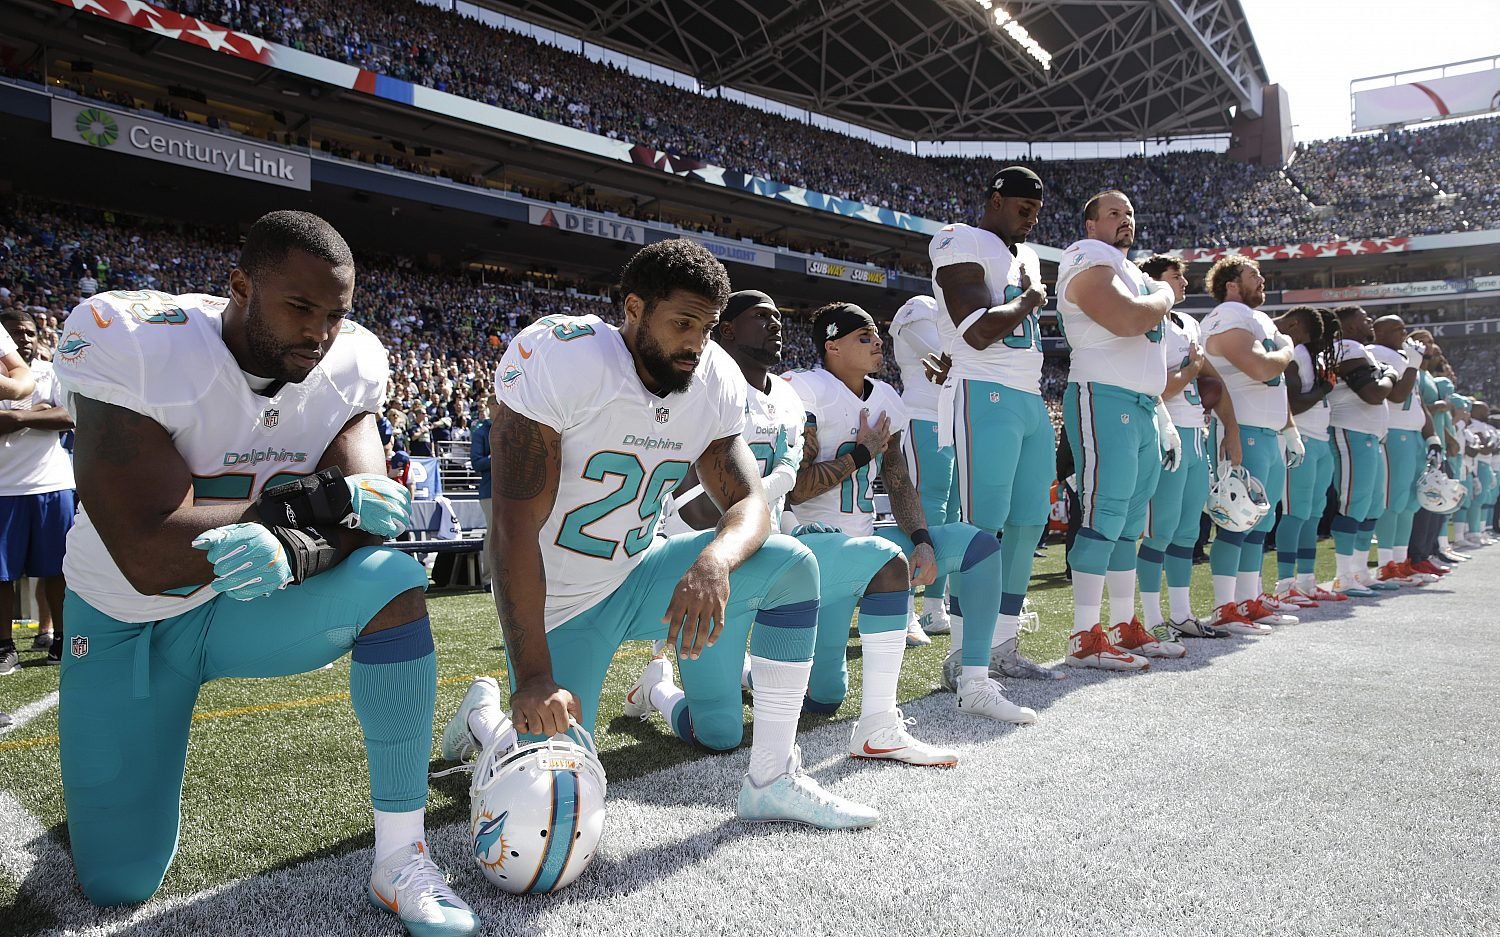 NFL, union hit pause on anthem policy